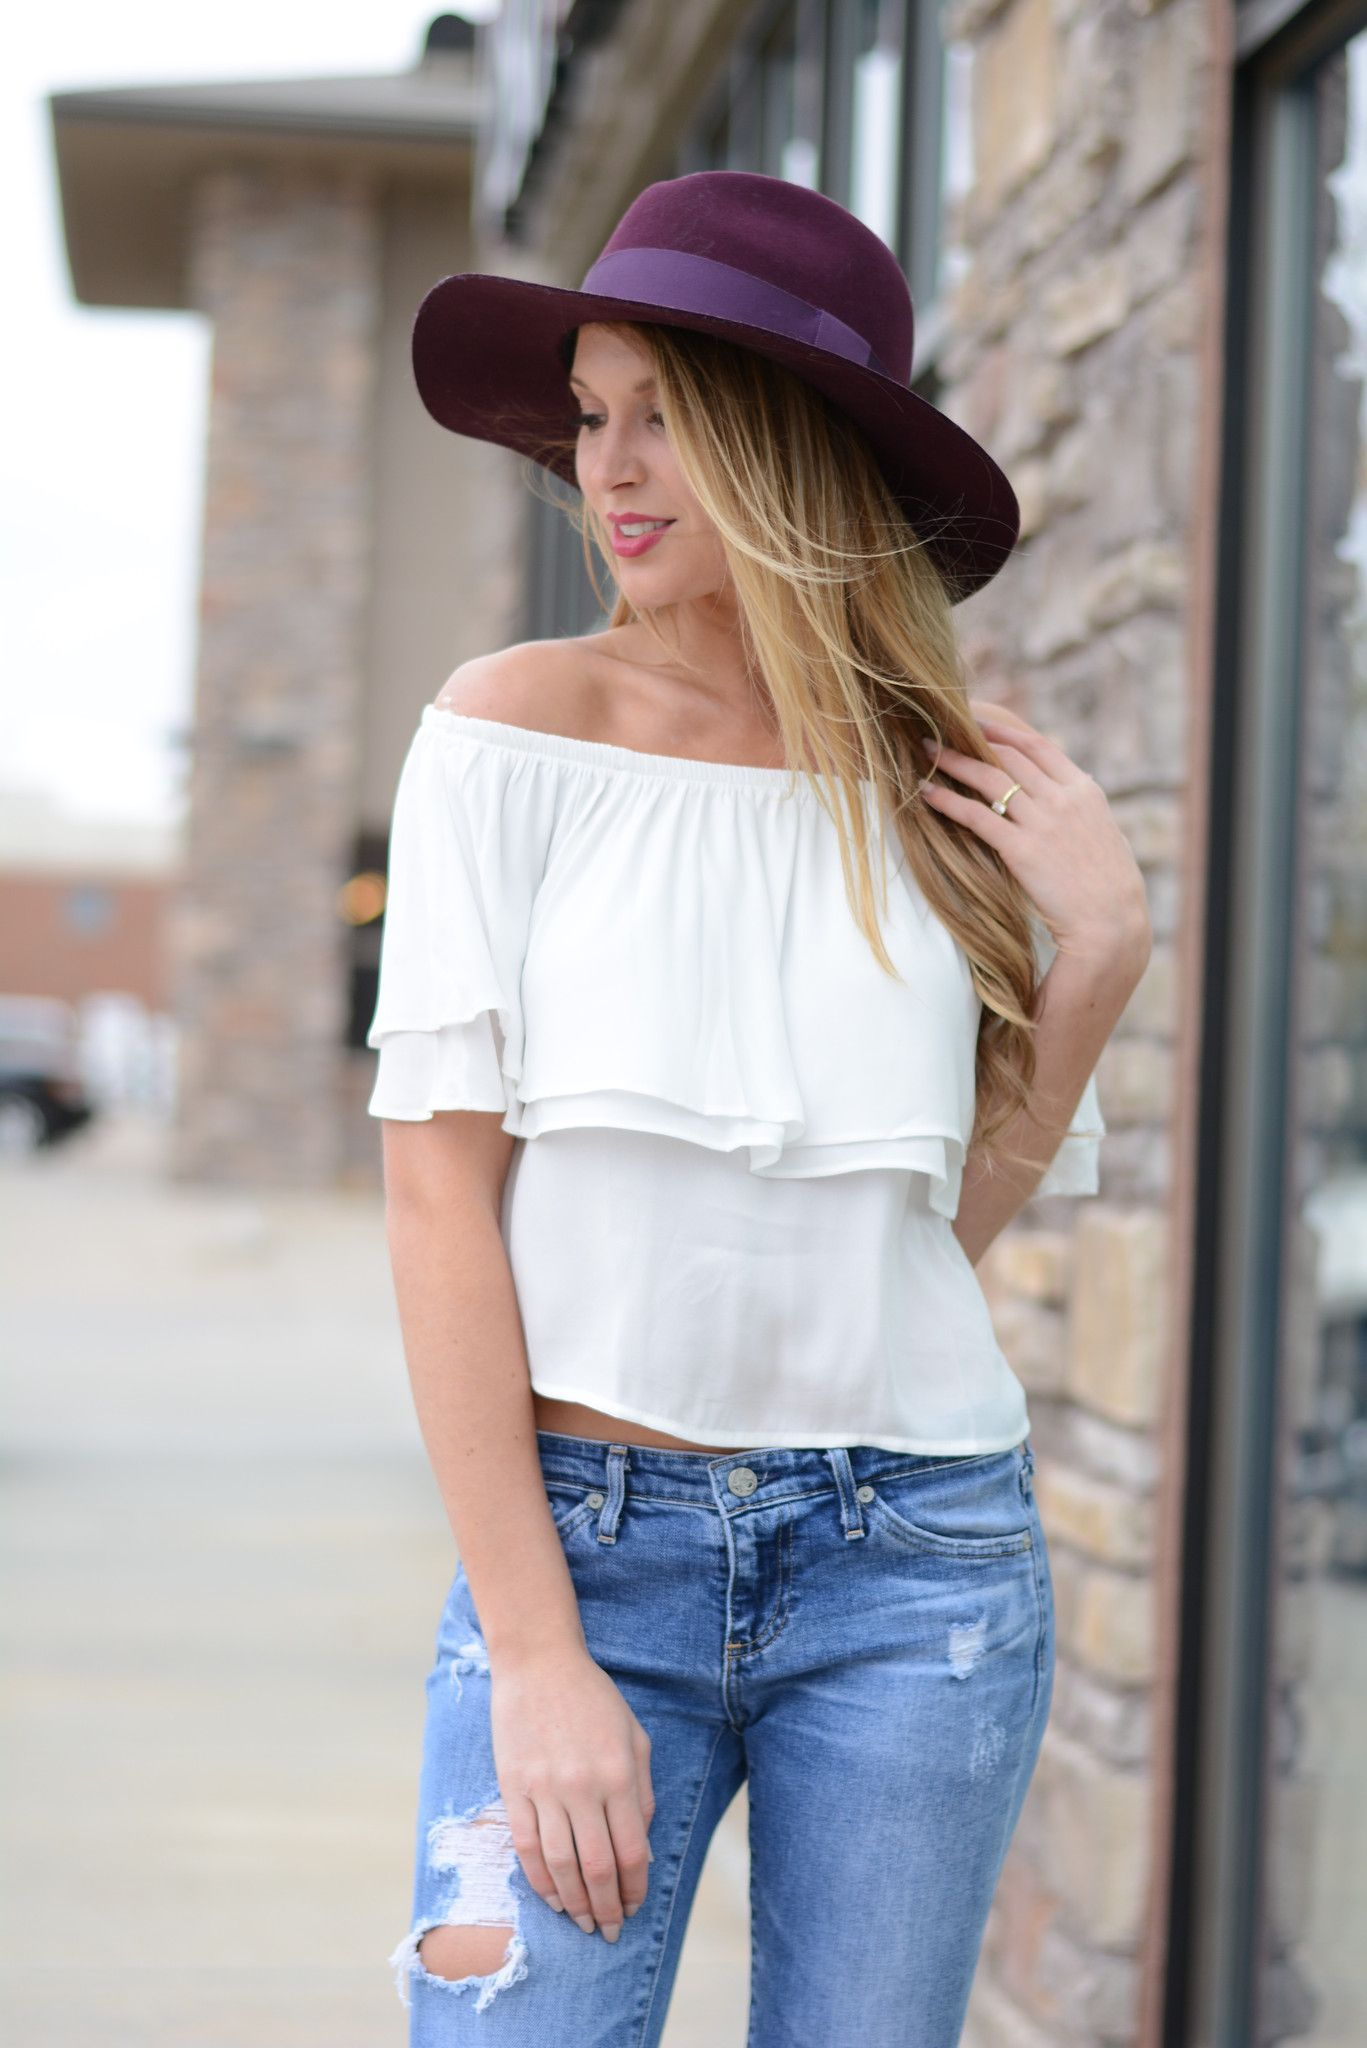 For The Frills Off The Shoulder Top Foi Clothing Boutique Off The Shoulder Trendy Top Must Have Buy N Trendy Tops Boutique Clothing Fall Fashion 2016